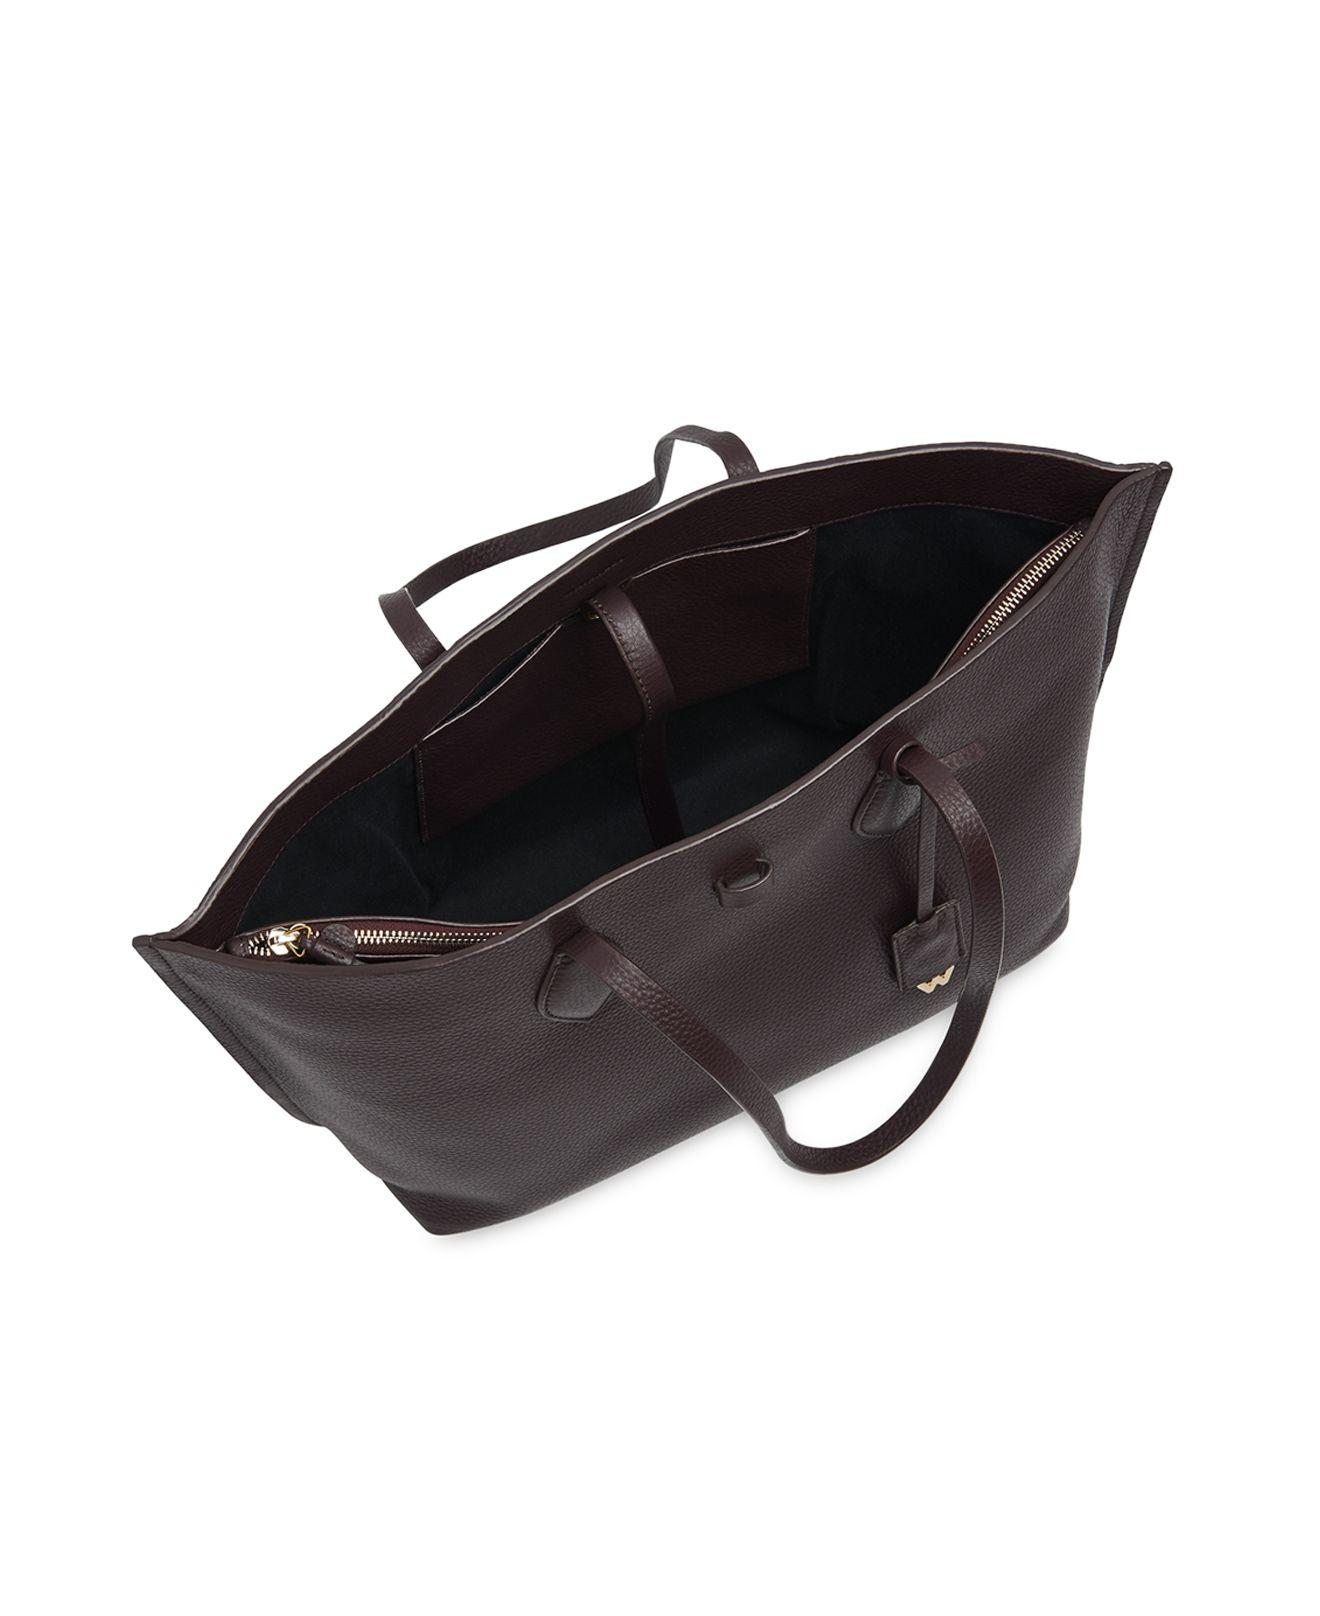 Whistles Leather Regent Tote in Burgundy (Black)